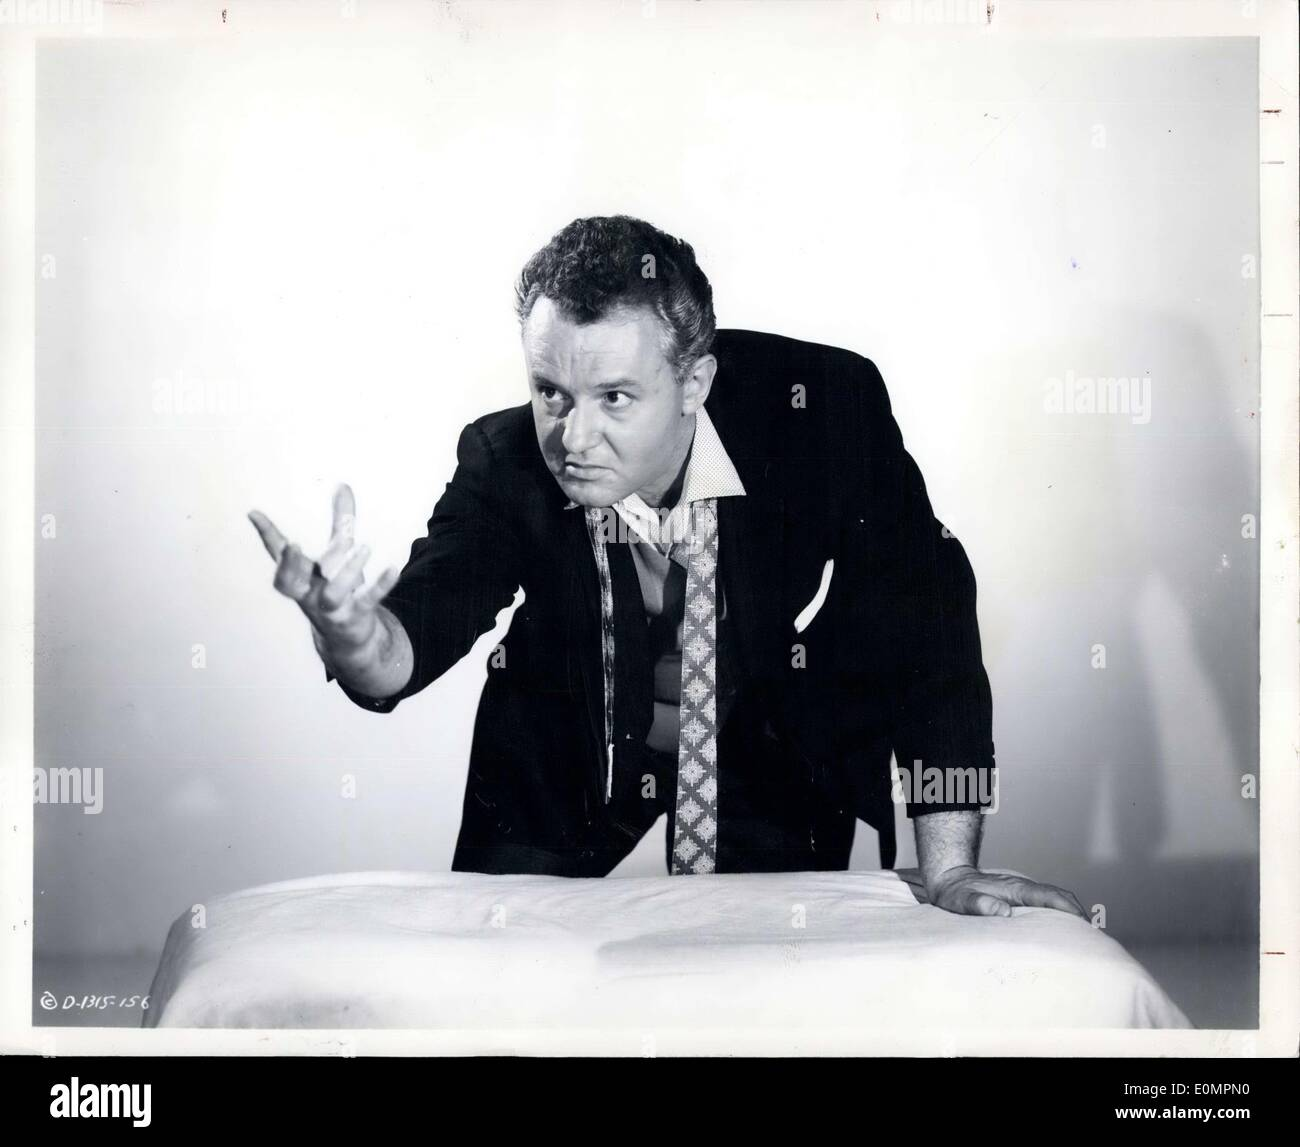 Apr. 29, 1956 - Rod Steiger, most dynamic young actor on the screen today, creates a memorable characterization of a snarling, conscience-less racketeer preying on the prize fight game in ''The Harder They Fail'', new feature at the Denver theater. Humphrey Bogart and Jon sterling also star in the blistering film attack on the fight racket. - Stock Image